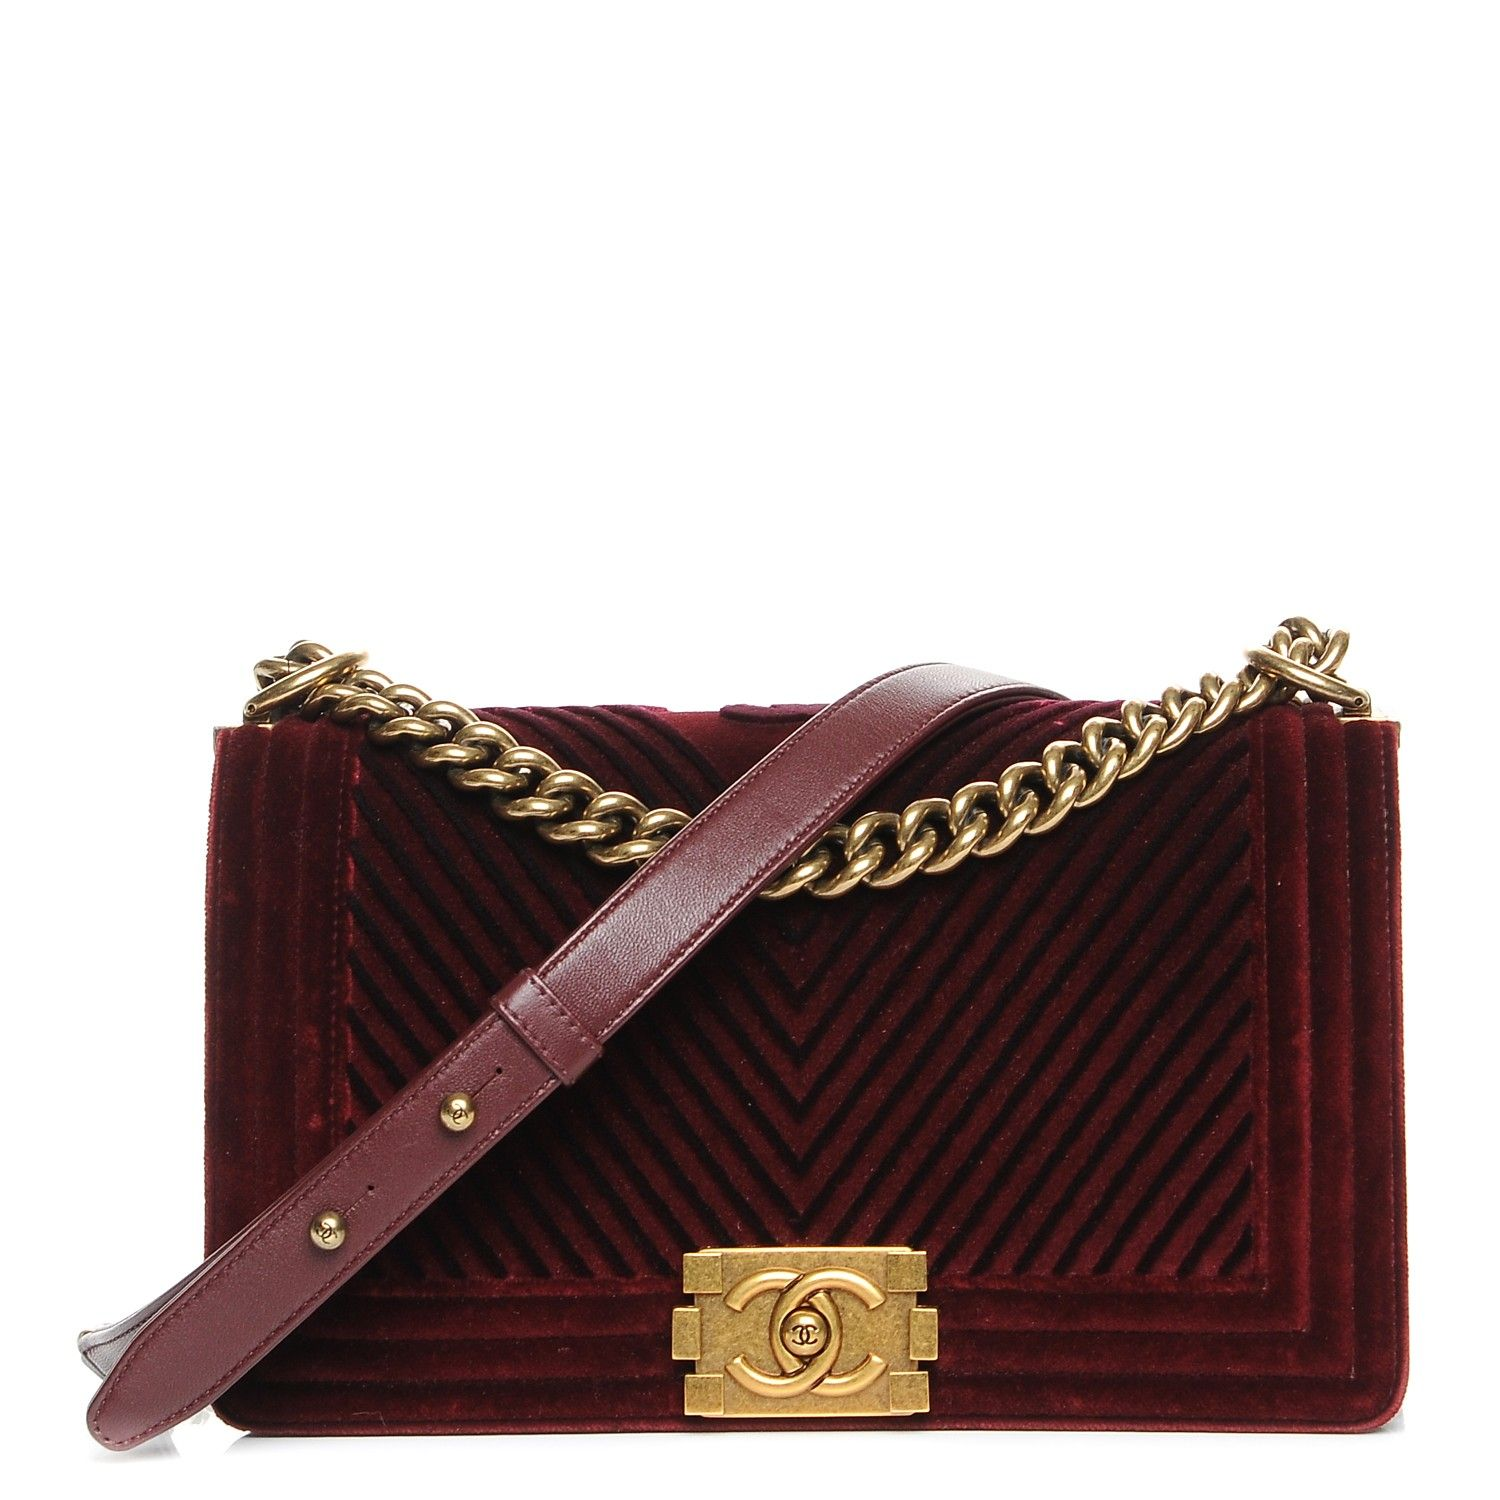 481fbdde86d59a This is an authentic CHANEL Velvet Chevron Medium Boy Flap in Burgundy.  This Paris Metiers